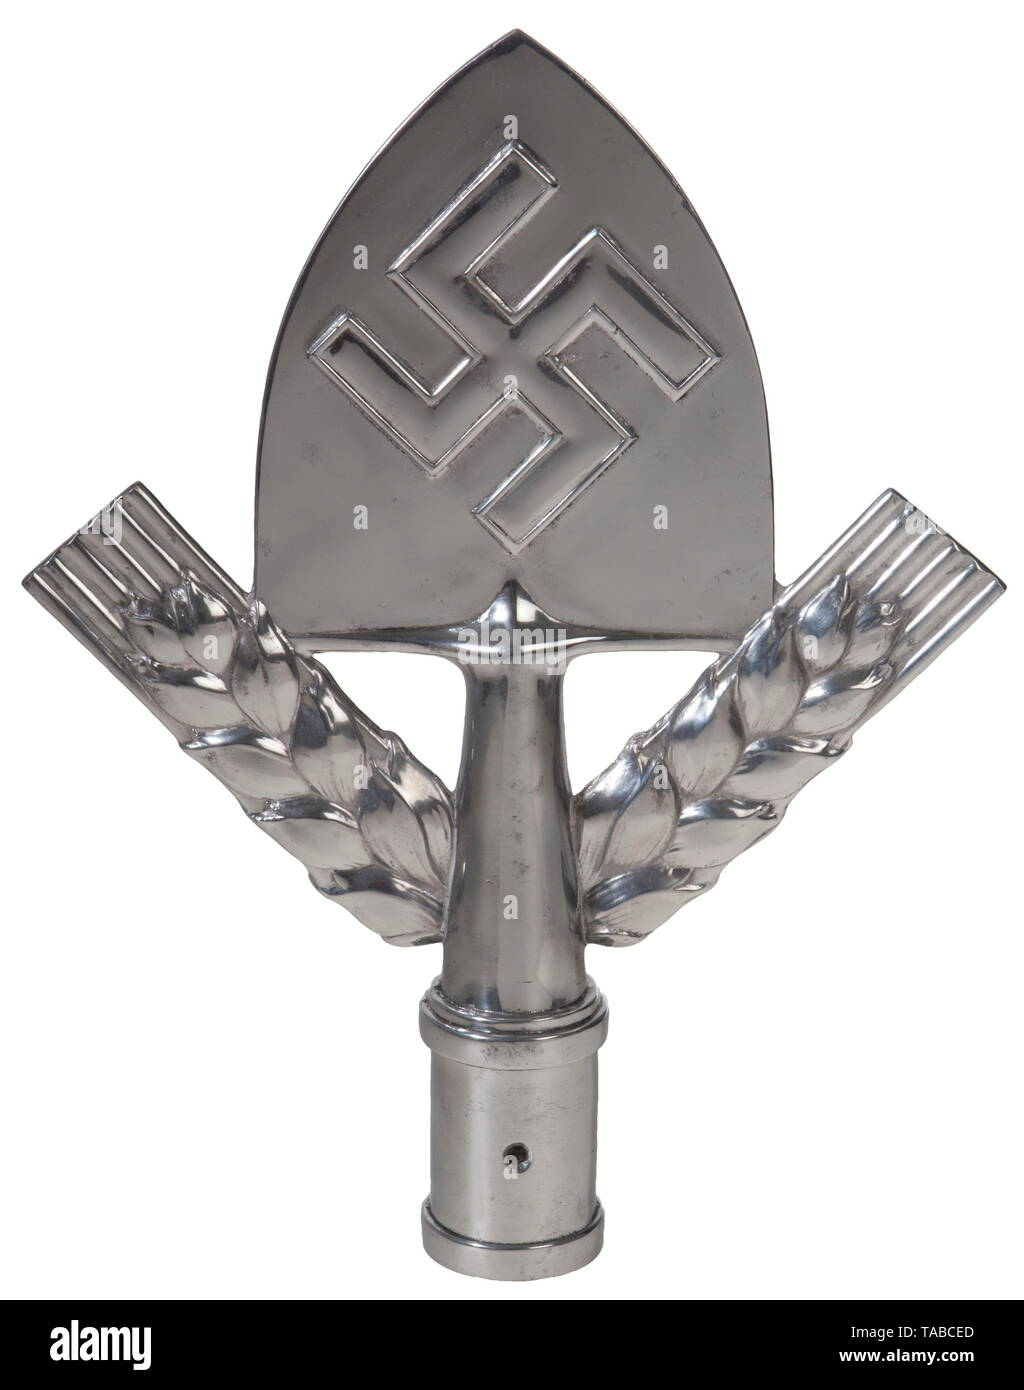 An RAD pole top Polished aluminium spade with swastika and wheat sheaves with pole cup stamped with designer's initials 'PC' and on bottom edge 'Ges. Gesch', 'JMME & SOHN'. Height 30 cm. USA-lot, see page 4. historic, historical, Reichsarbeitsdienst, Reich Labor Service, State Labour Service, organisation, organization, organizations, organisations, NS, National Socialism, Nazism, Third Reich, German Reich, Germany, National Socialist, Nazi, Nazi period, fascistic, fascism, utensil, piece of equipment, utensils, accessory, accessories, object, objects, stills, clipping, cli, Editorial-Use-Only - Stock Image